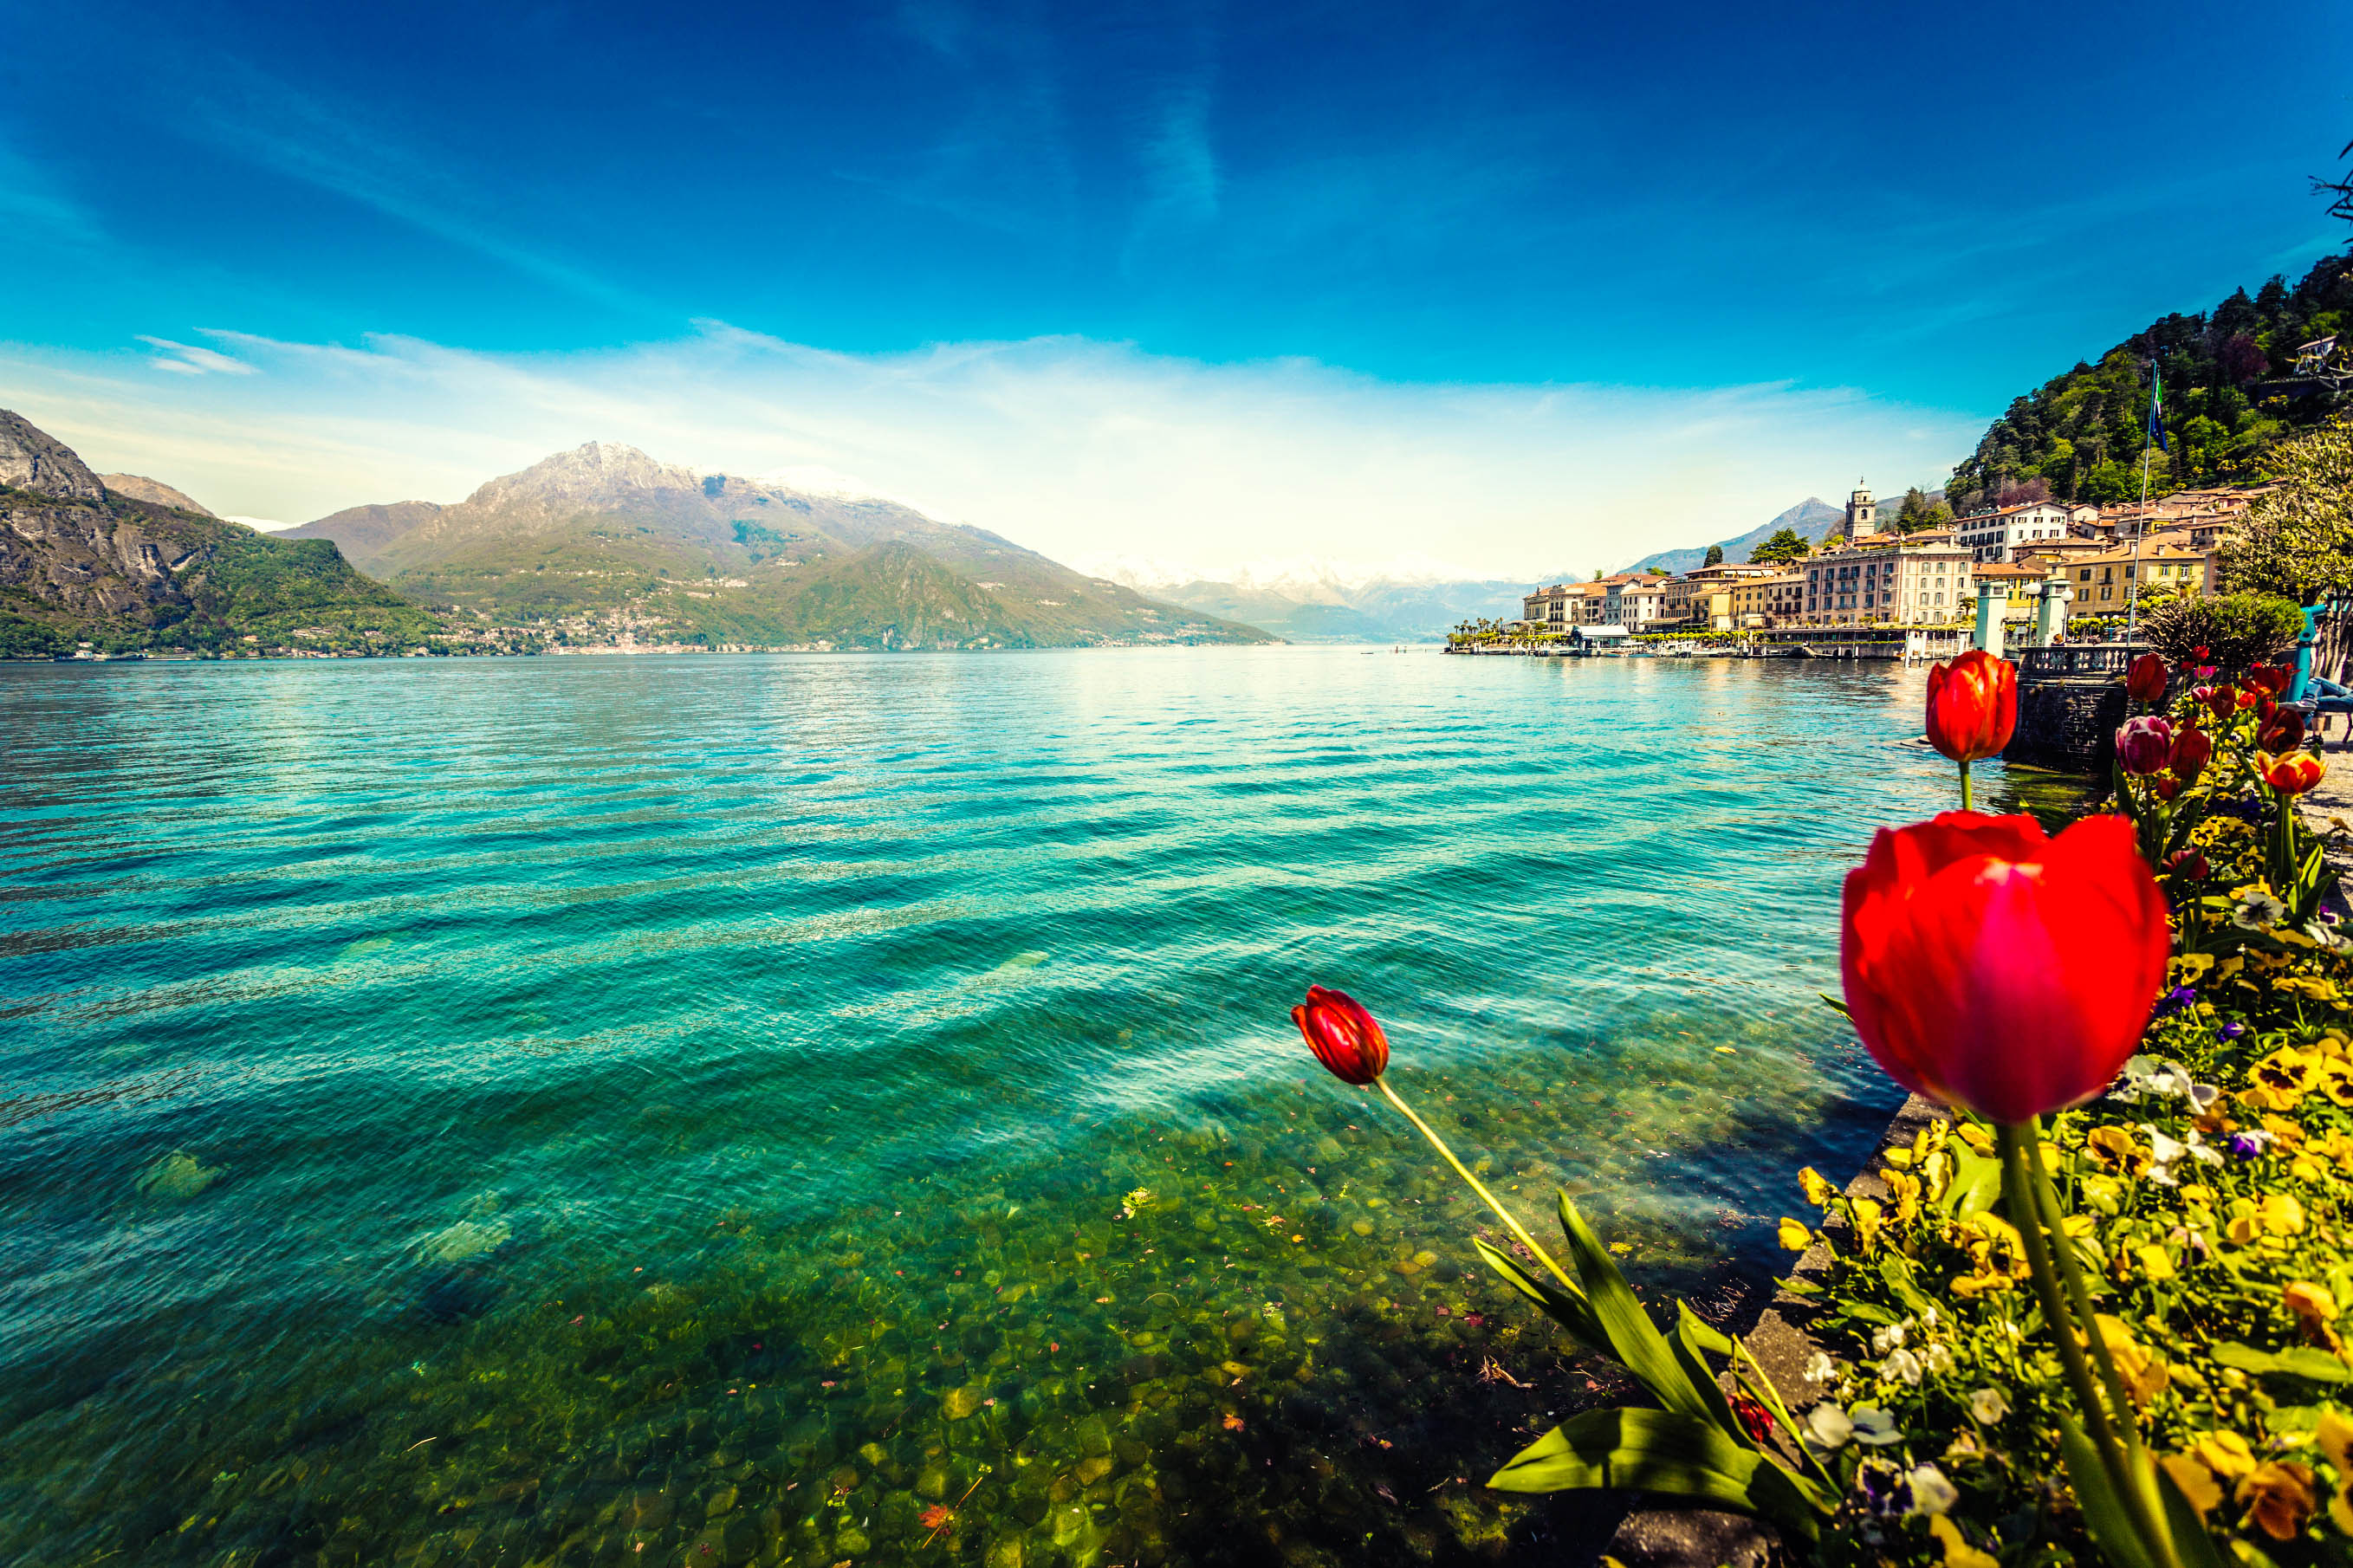 Bellagio am Comer See, Italien